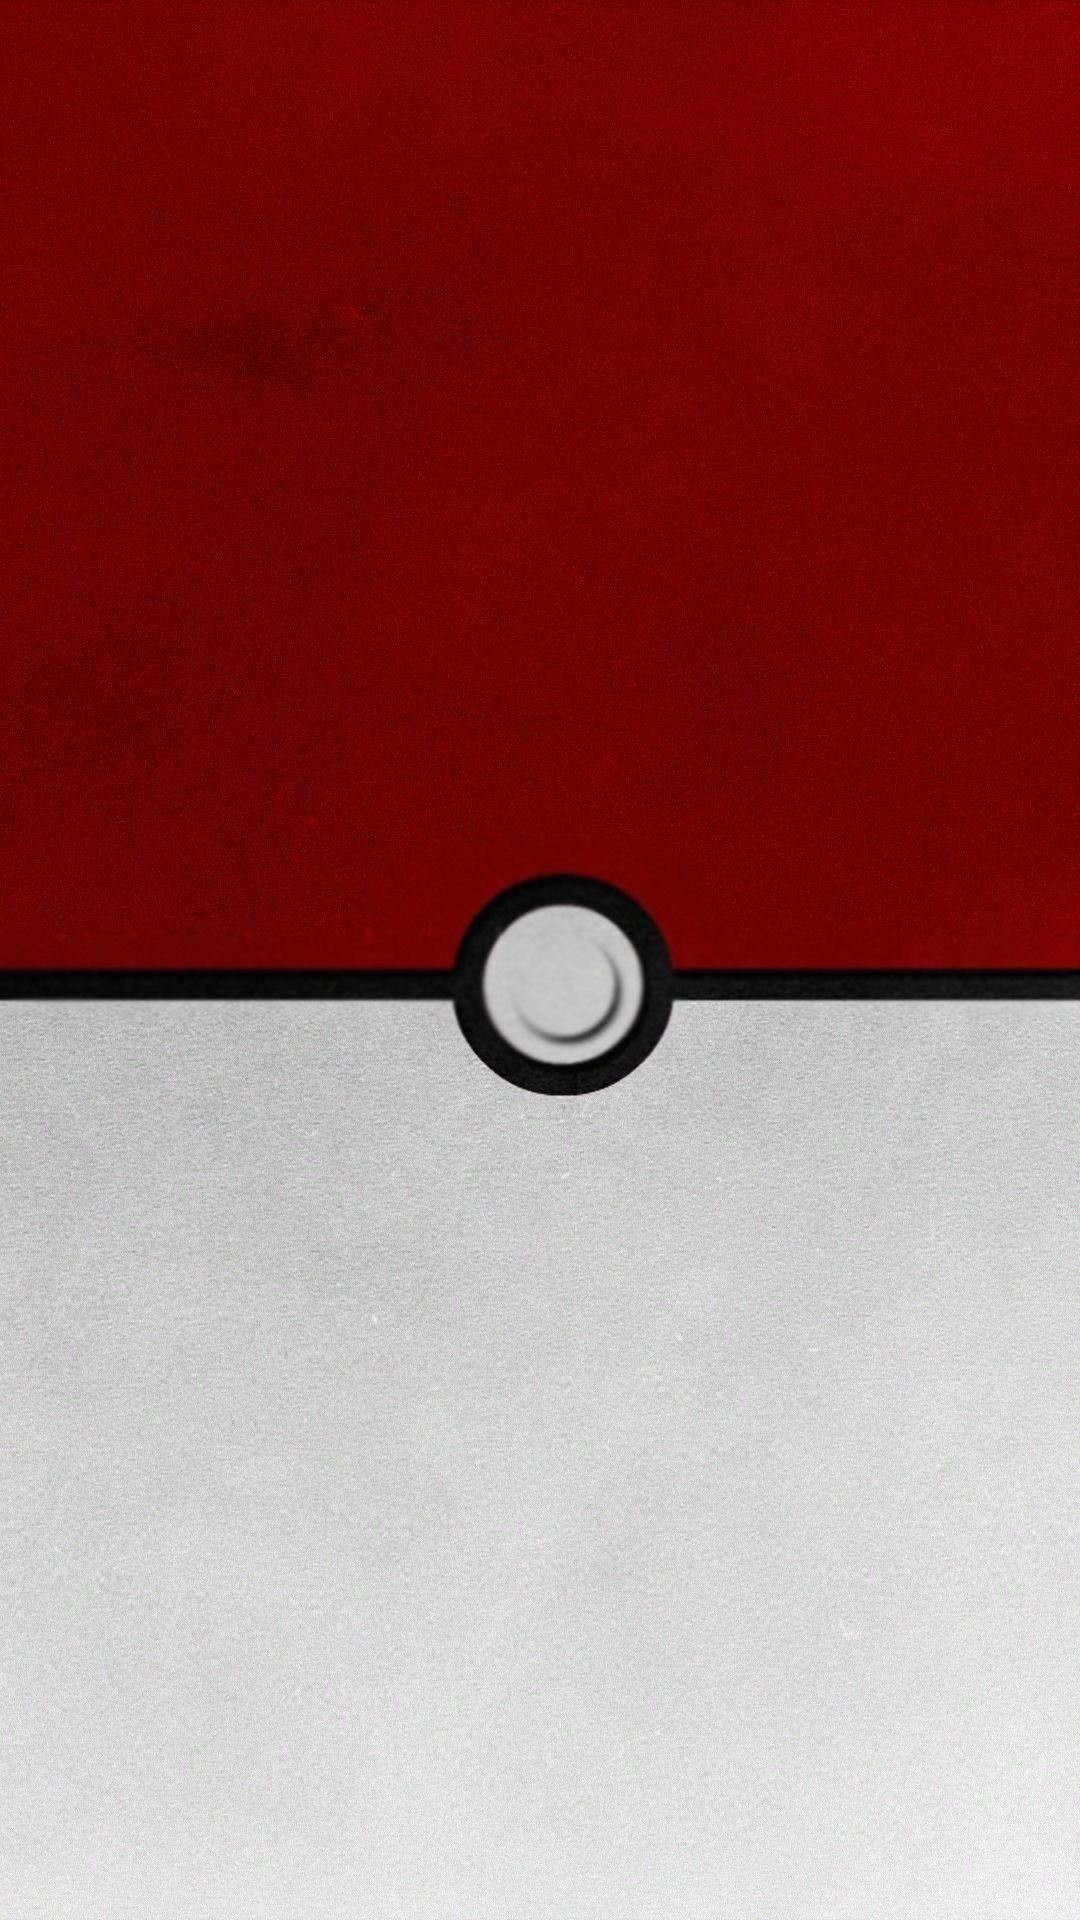 Pokemon Go Hd Wallpapers For Iphone 6s Plus Wallpapers Pictures